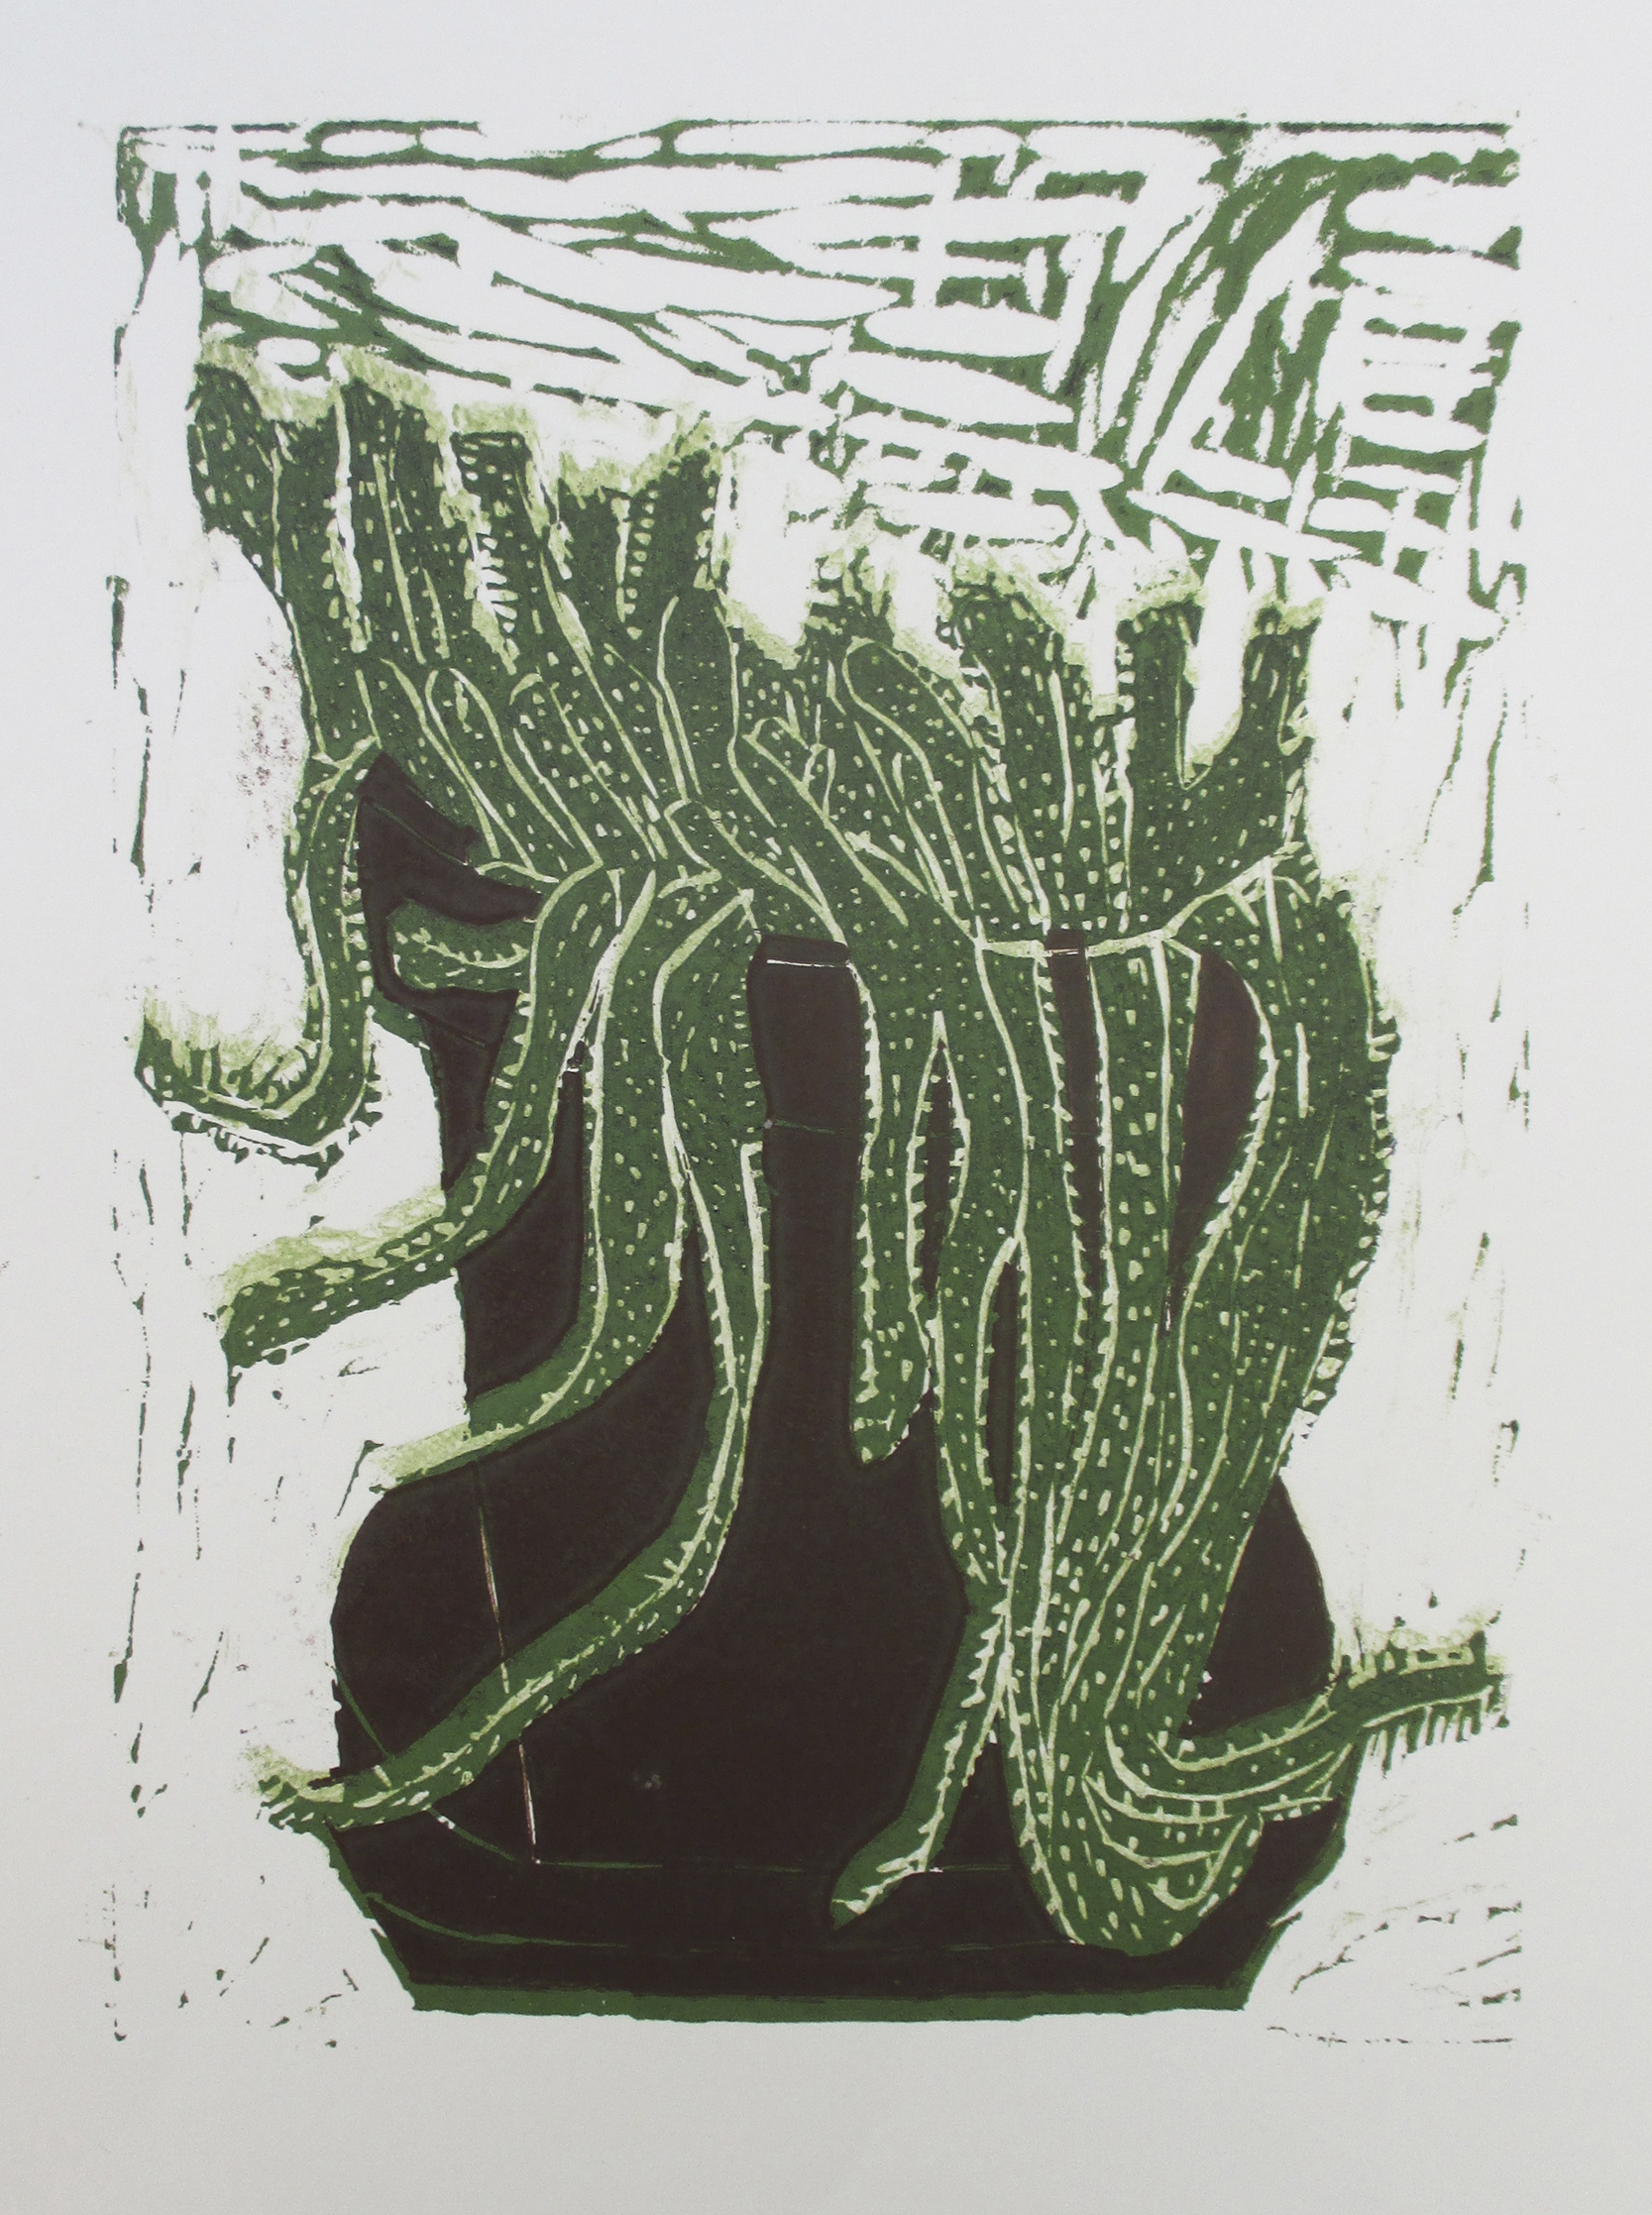 Christmas Cactus   Lino Print on Acid free Ken Cartridge 190gsm  29.7 cm x 42 cm  Edition of 20  2013